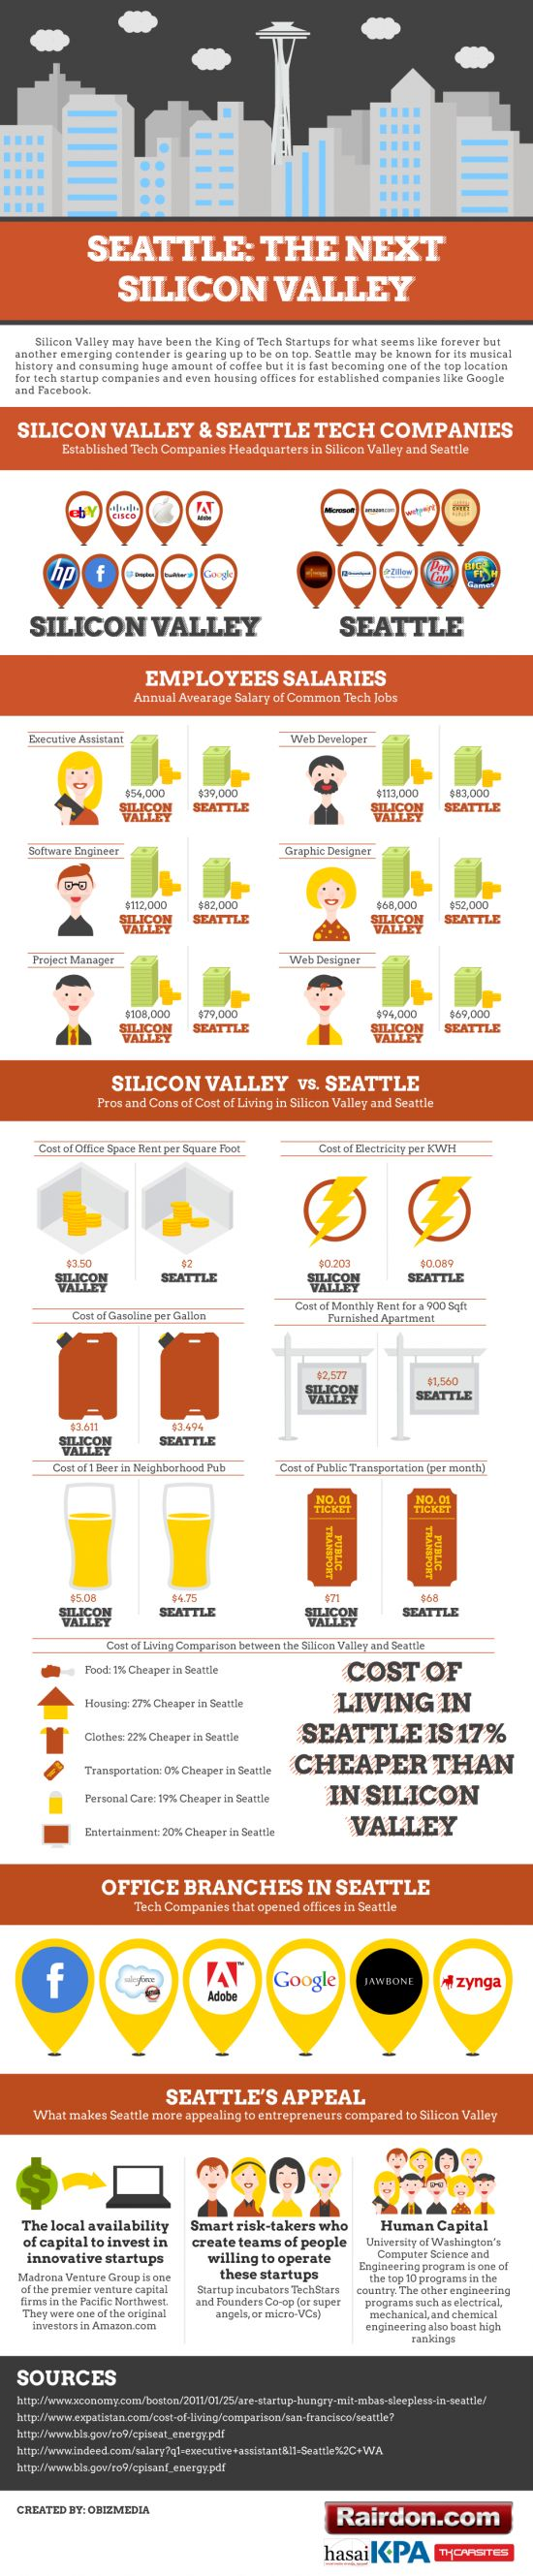 Those of us who live in the Seattle area know that it is quickly becoming a haven for tech companies. While Silicon Valley near San Francisco might have the market cornered and Silicon Alley in New York City might be the up-and-comer to most, Seattle has a serious case that they can make for having the best of both worlds. This infographic breaks down some of the important aspects of Seattle that make it a logical choice for more tech companies to use as their home base or as a satellite…